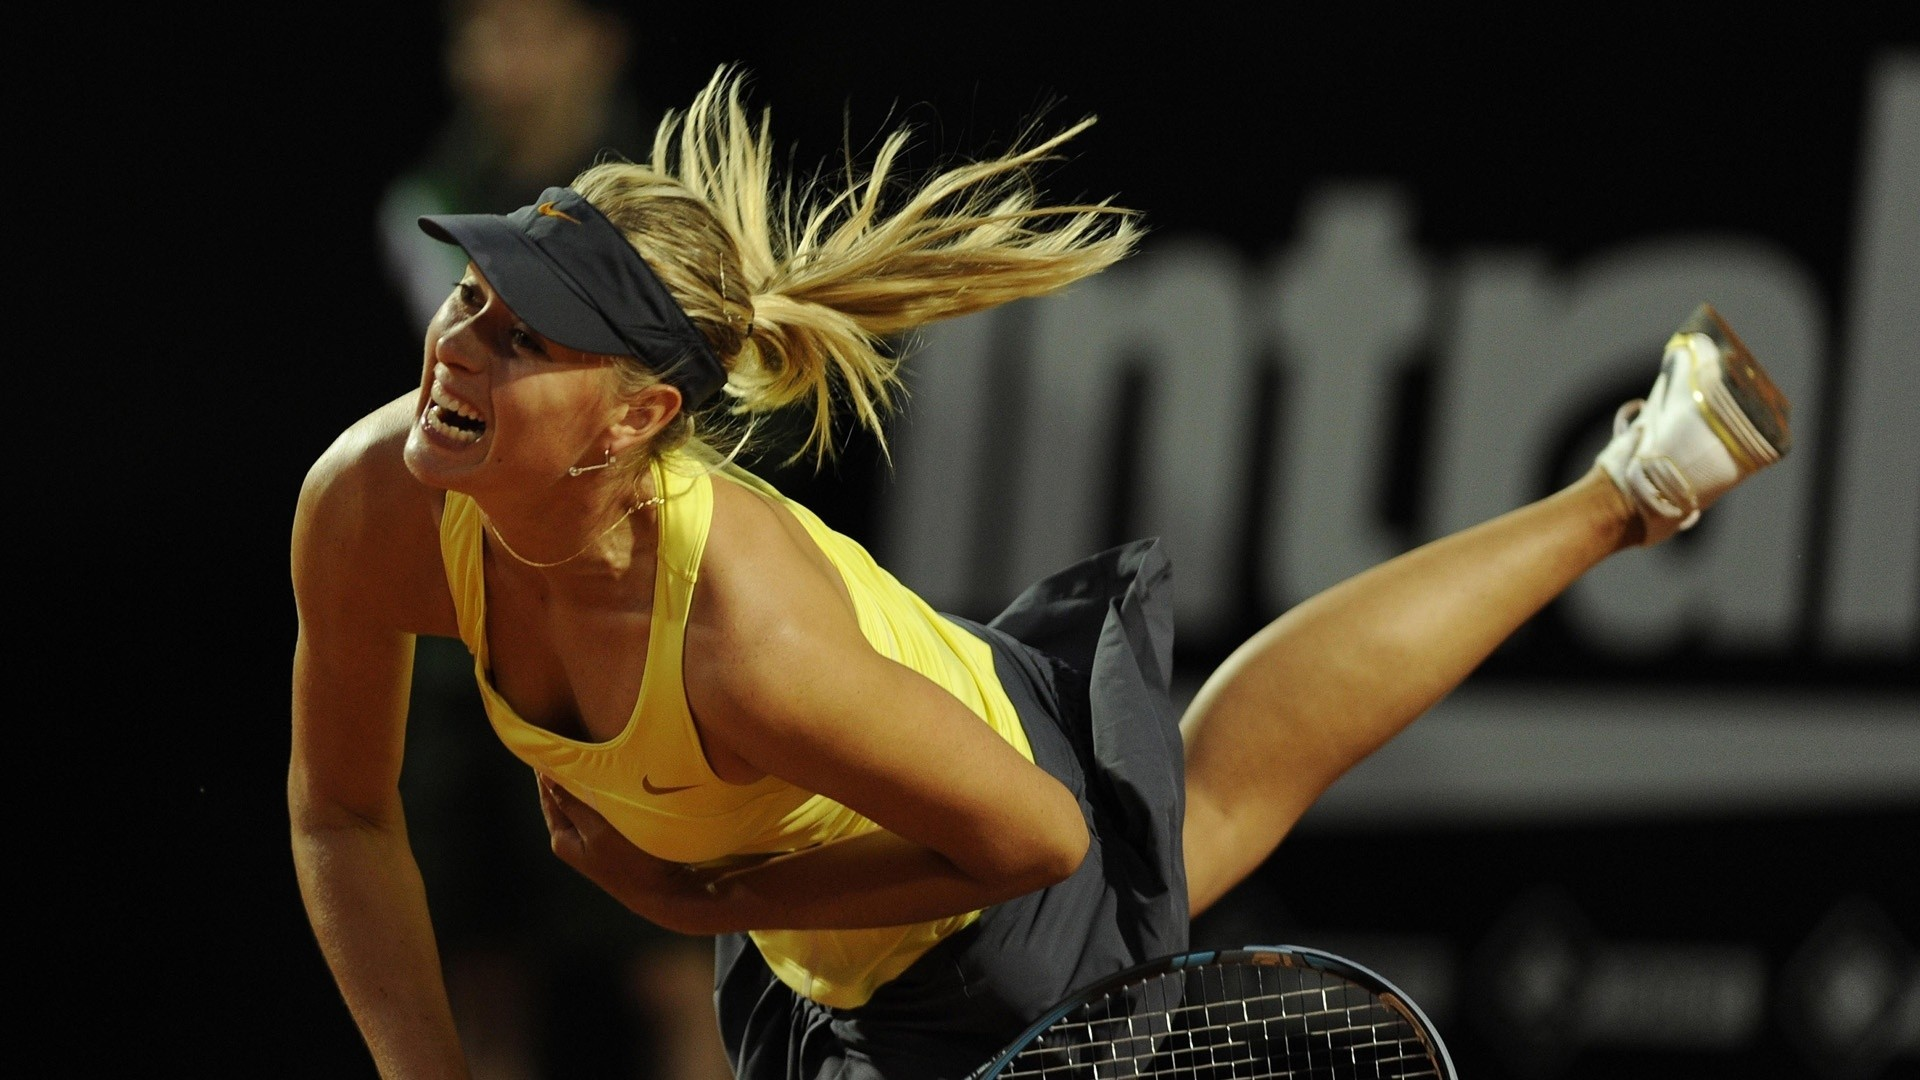 blondes woman maria sharapova HD Wallpaper